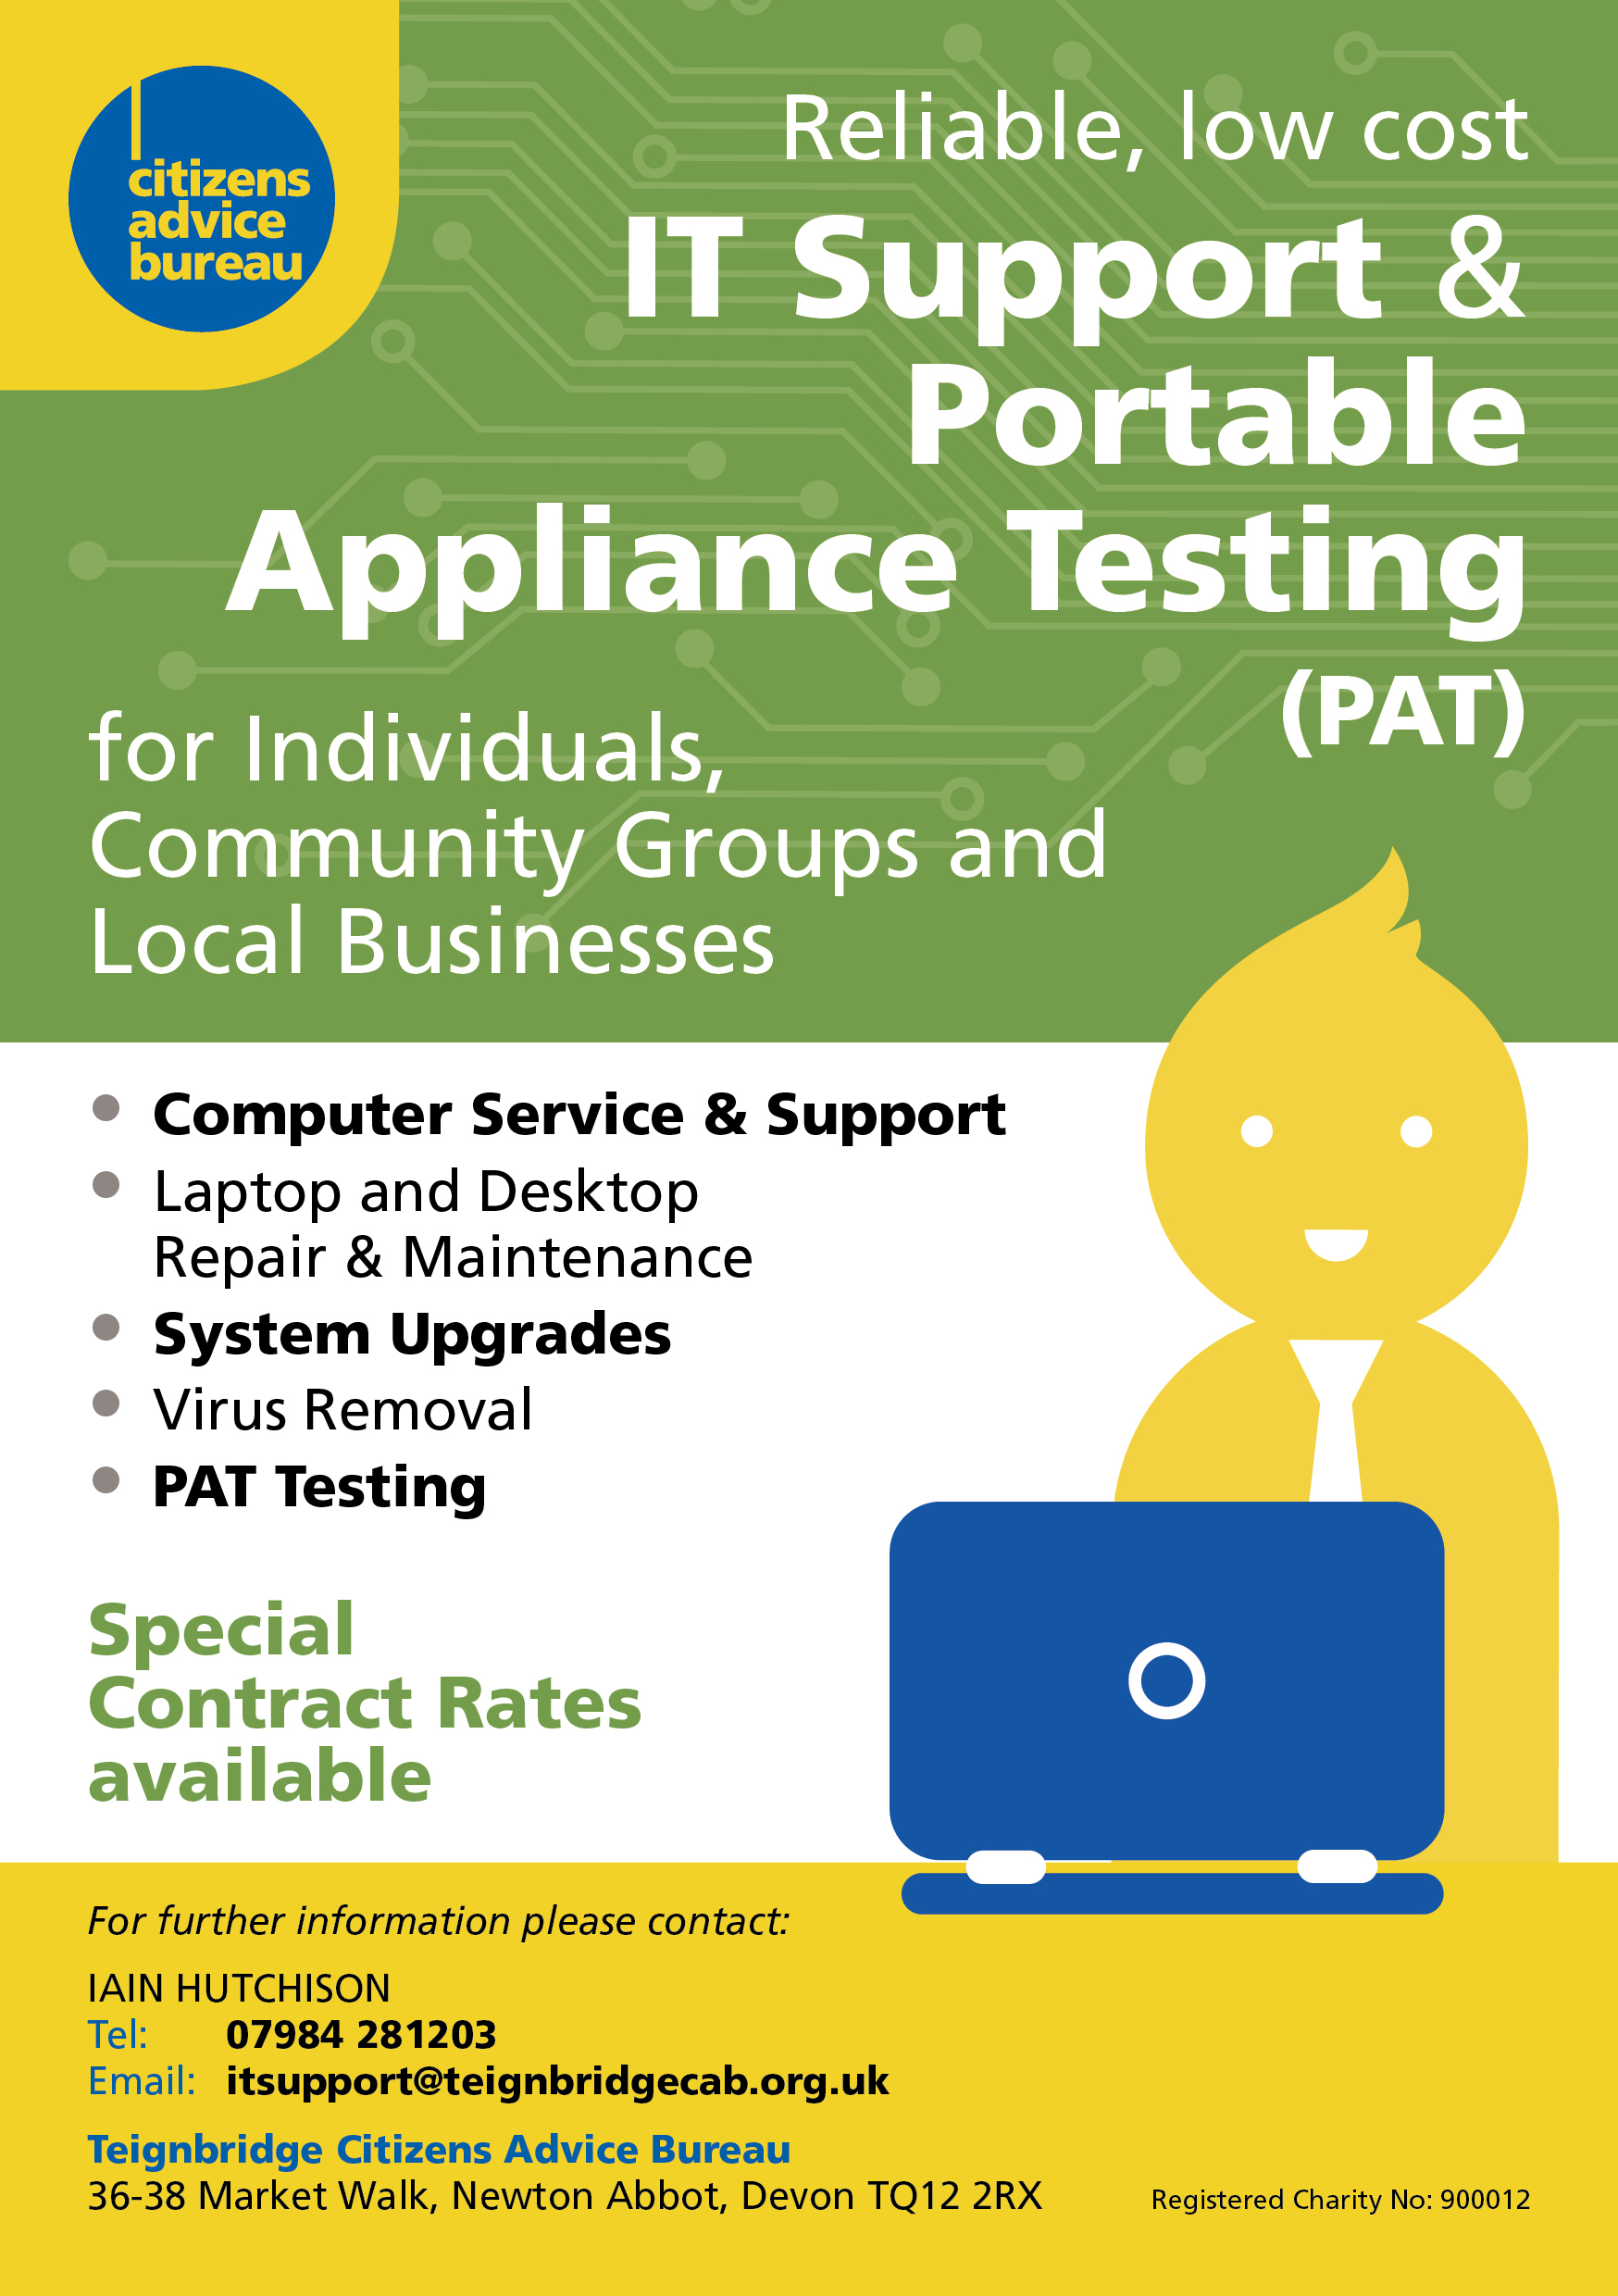 IT support for individuals, community groups and local businesses. Computer service and support, laptop and desktop repair and maintenance, system upgrades, virus removal, PAT testing. Special contract rates available. For further information contact Iain Hutchison: 07984 281203, itsupport@citizensadviceteignbridge.org.uk